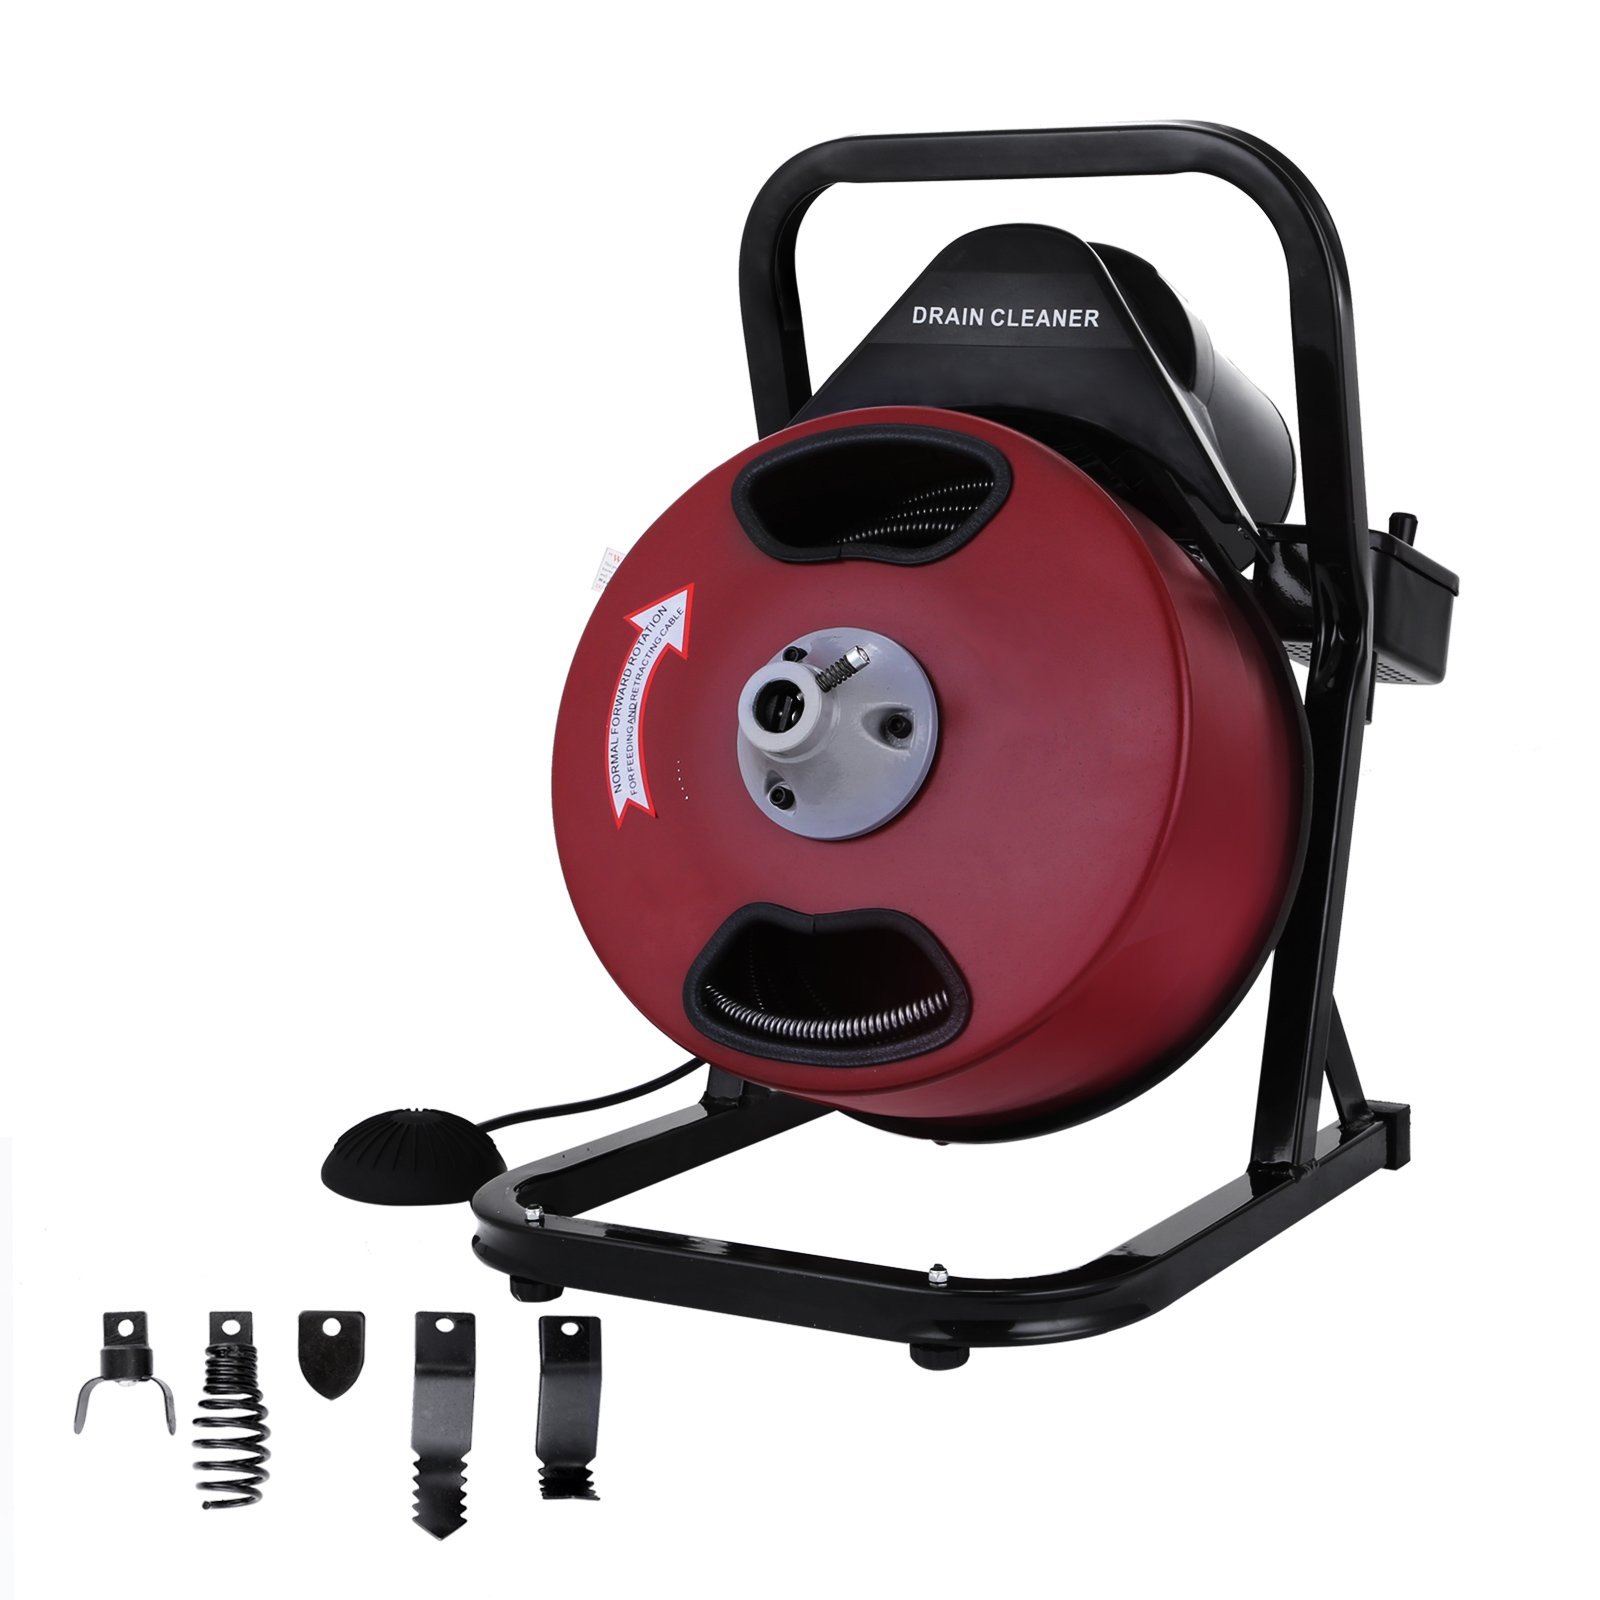 OrangeA Sewer Snake Drill Drain Auger Cleaner 50FT Long 1/2'' Wide Electric Drain Cleaning Machine 4 Cutter & Foot Switch Drain Cleaner Drum Auger Snake for 2'' to 4'' Pipes (HX-68284)